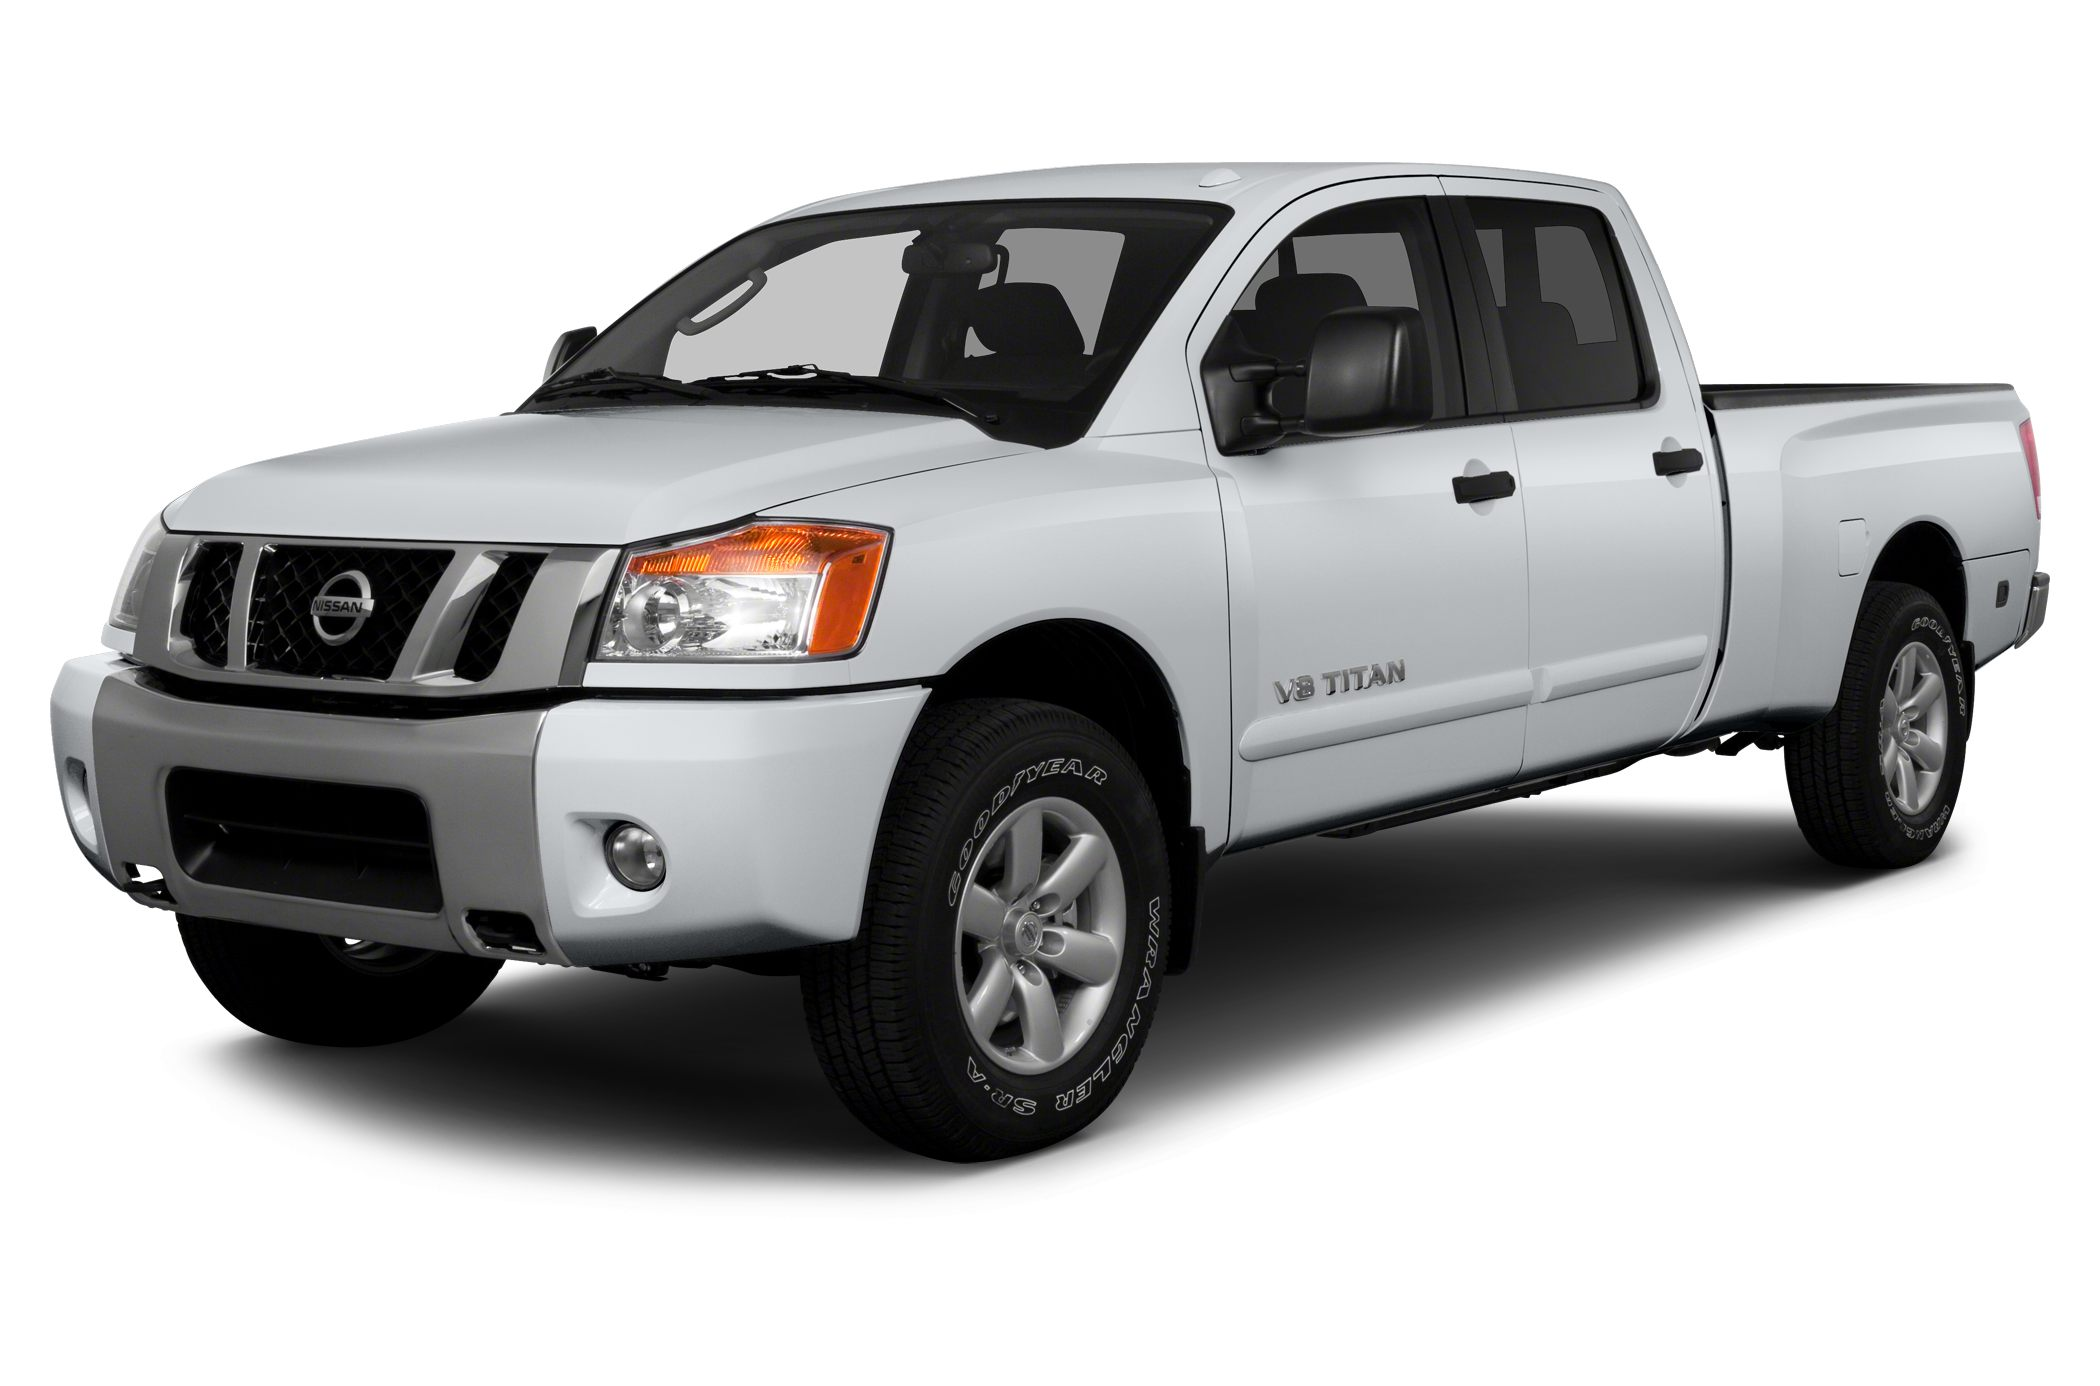 2015 Nissan Titan SV This 2015 Nisan Titan 4WD SV is LIKE NEW Well equipped with Navigation back